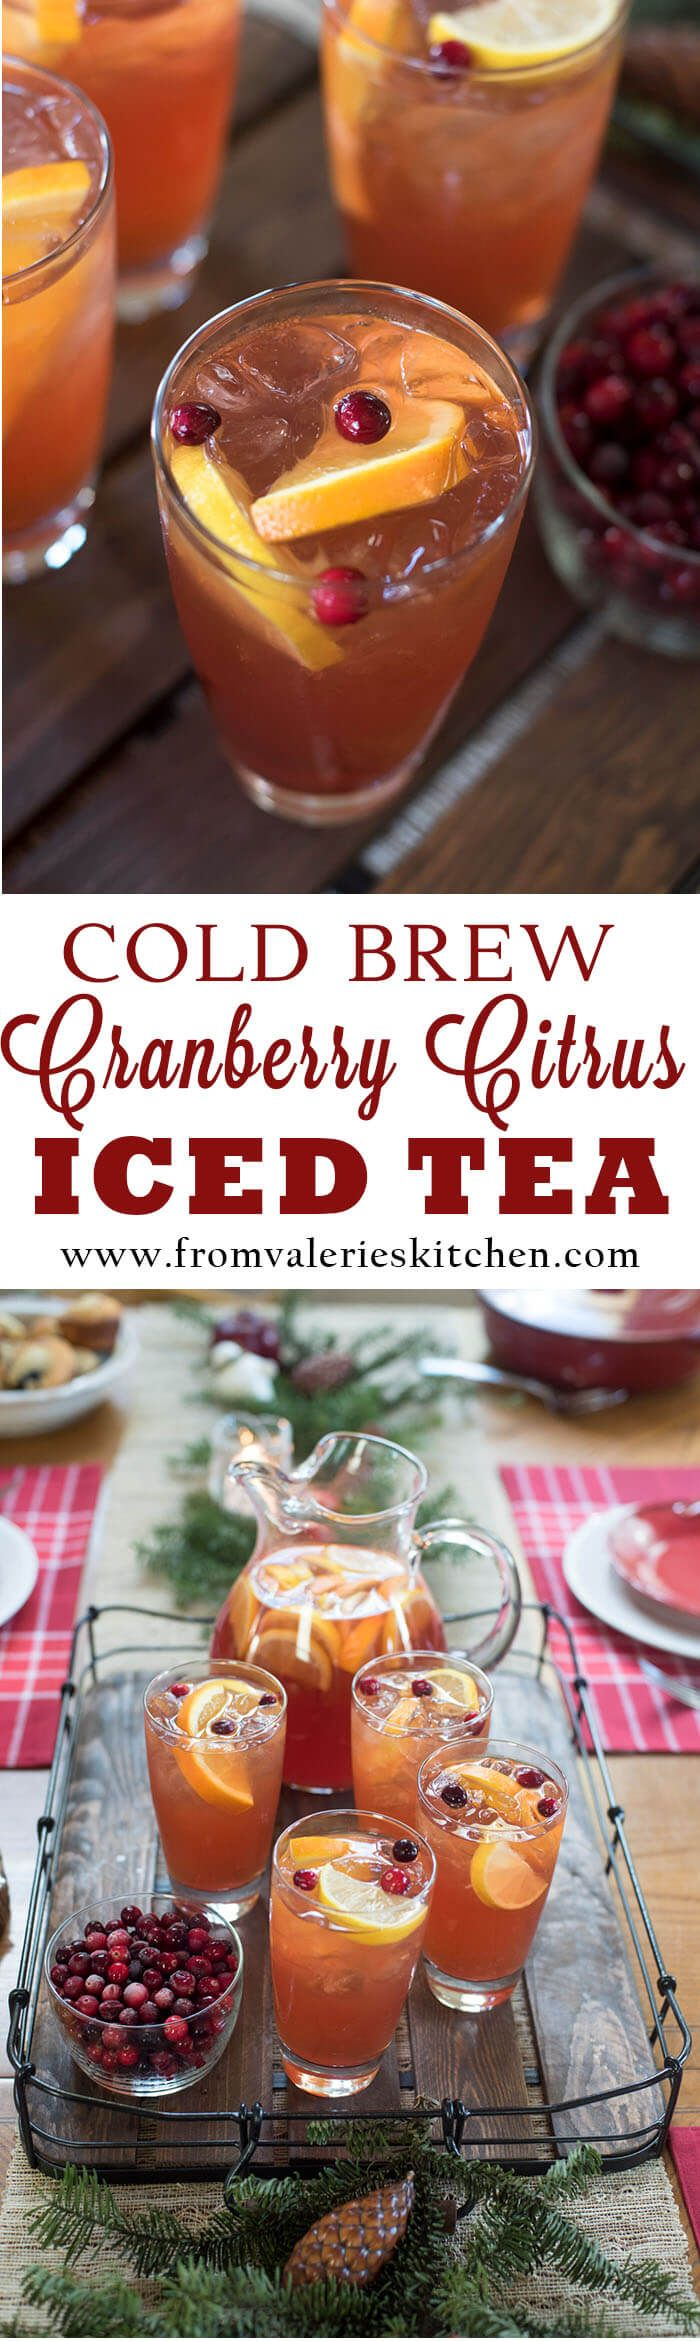 A fast, easy cold brew method creates this vibrant winter-inspired beverage. Brighten up your next winter meal with Cold Brew Cranberry Citrus Iced Tea. #BrightBites #ad